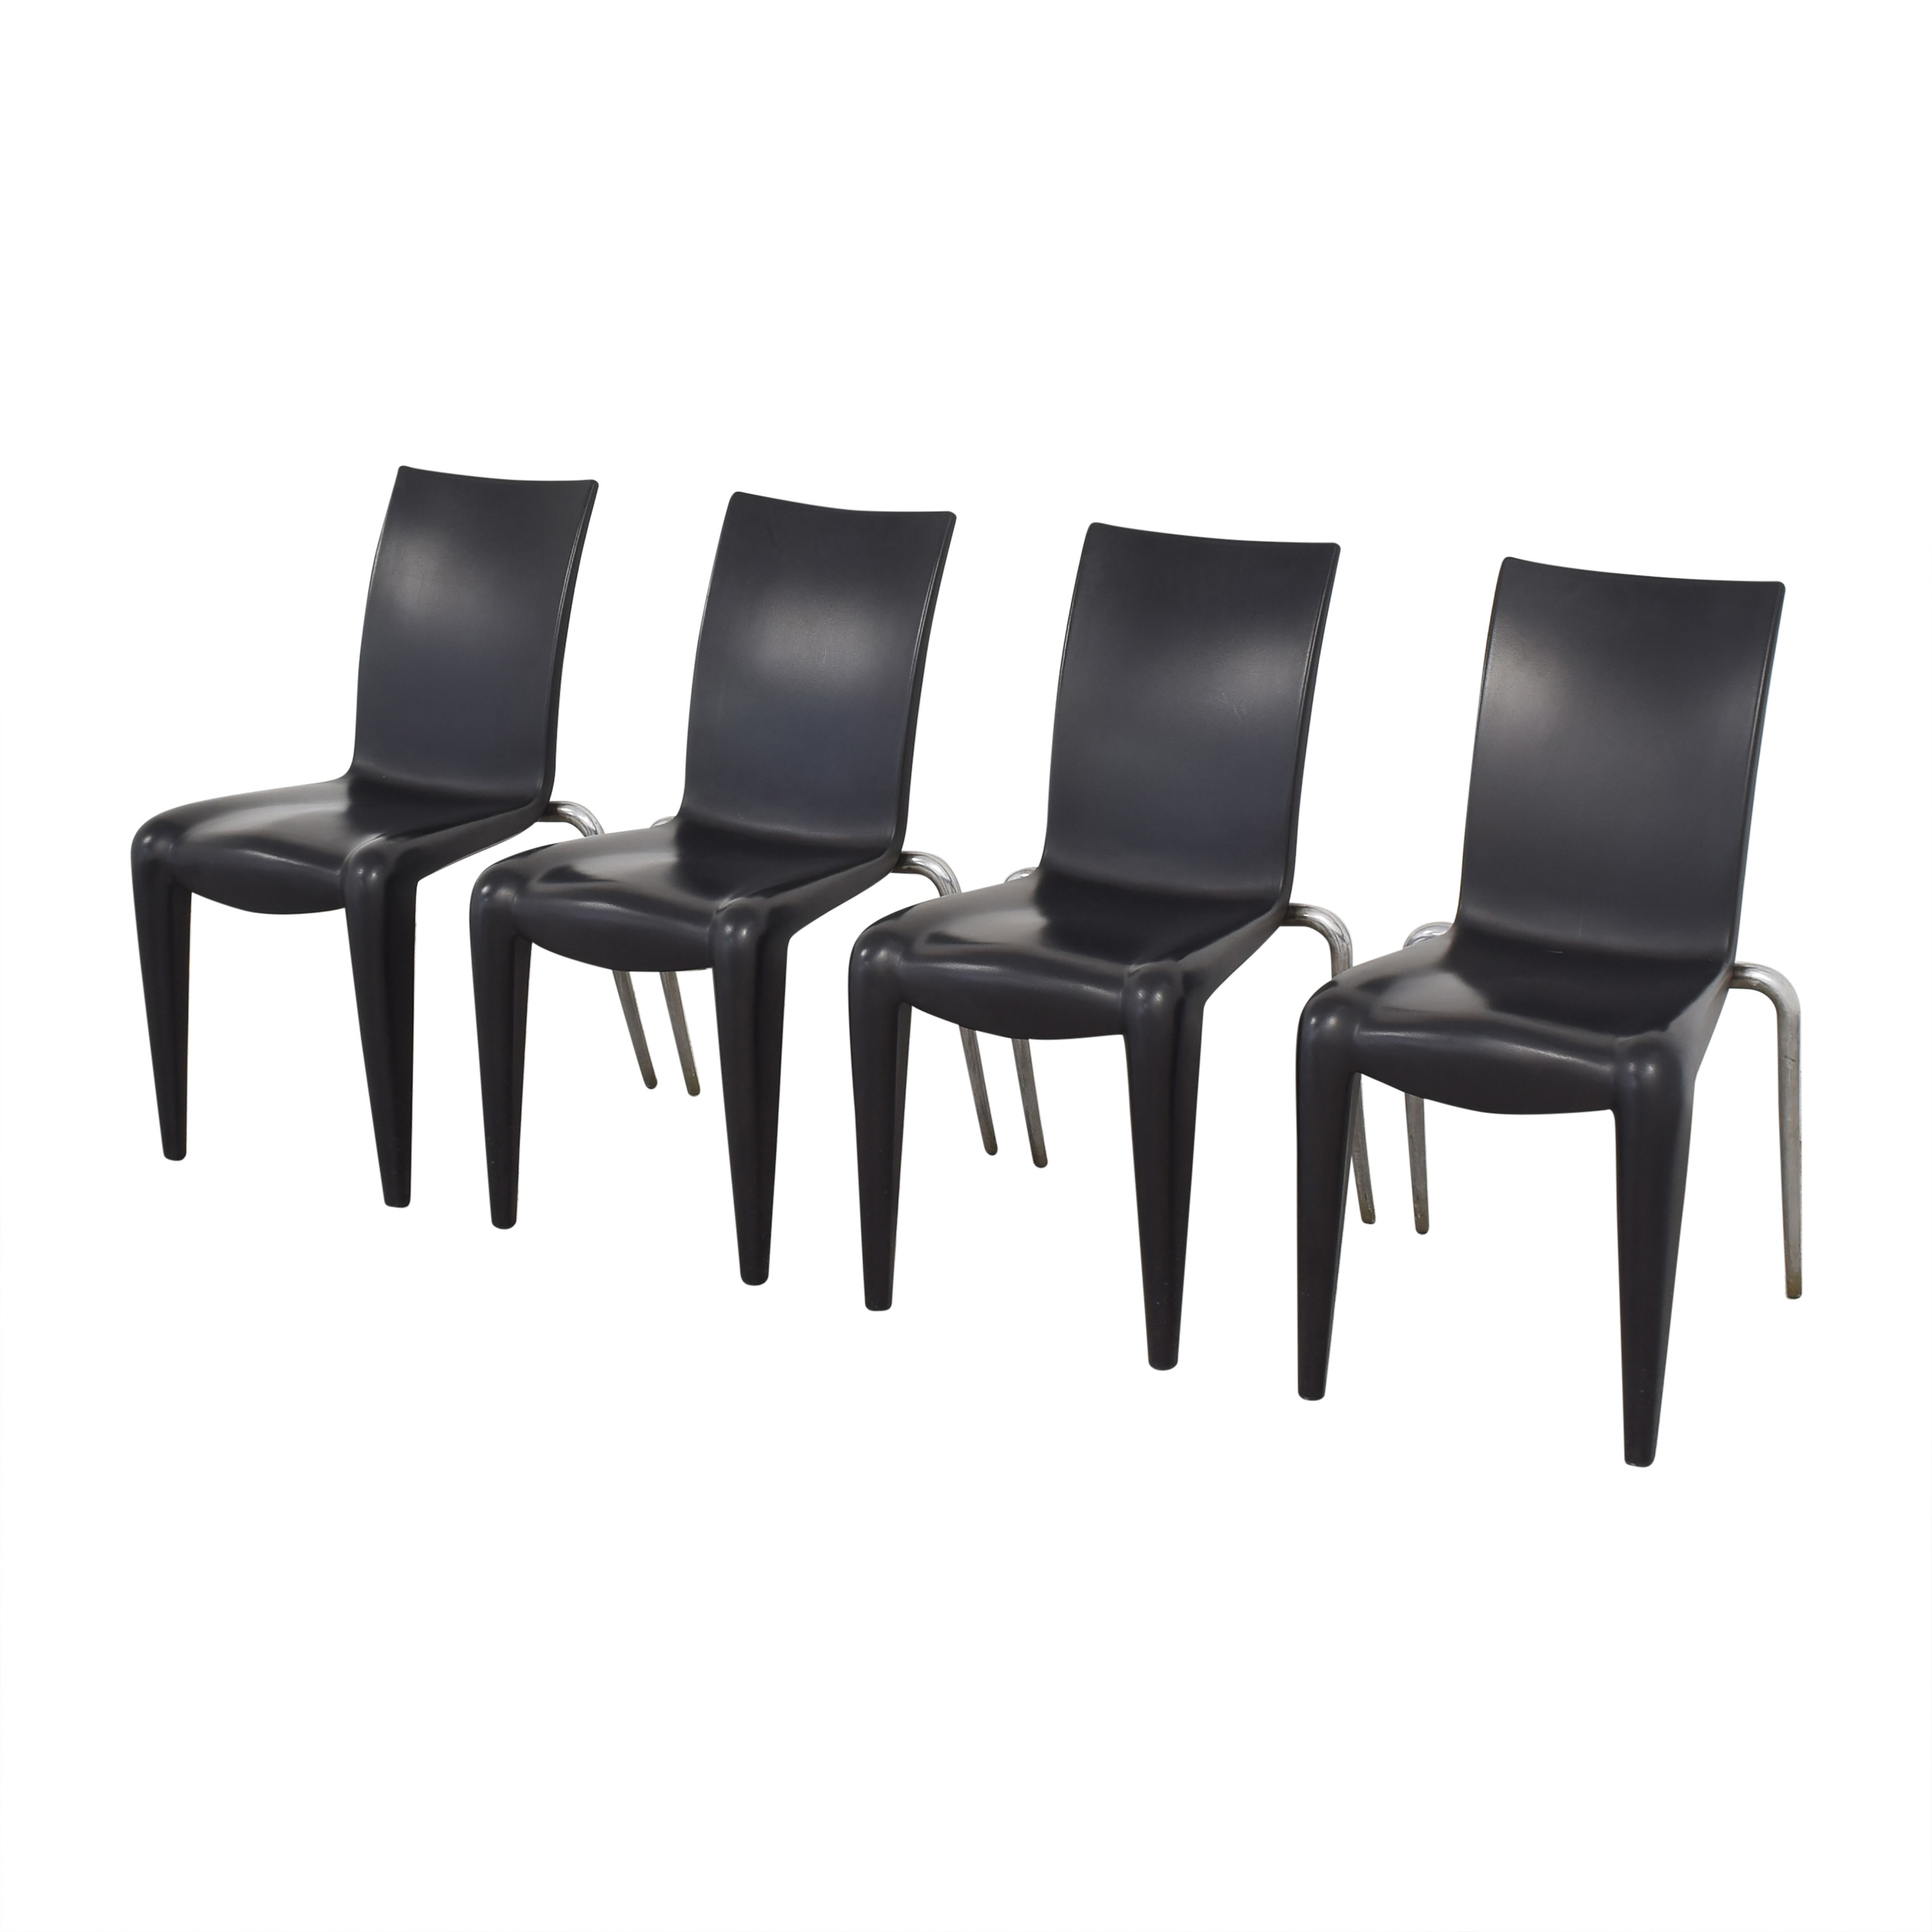 Vitra Vitra Louis 20 Dining Chairs by Phillipe Starck nj